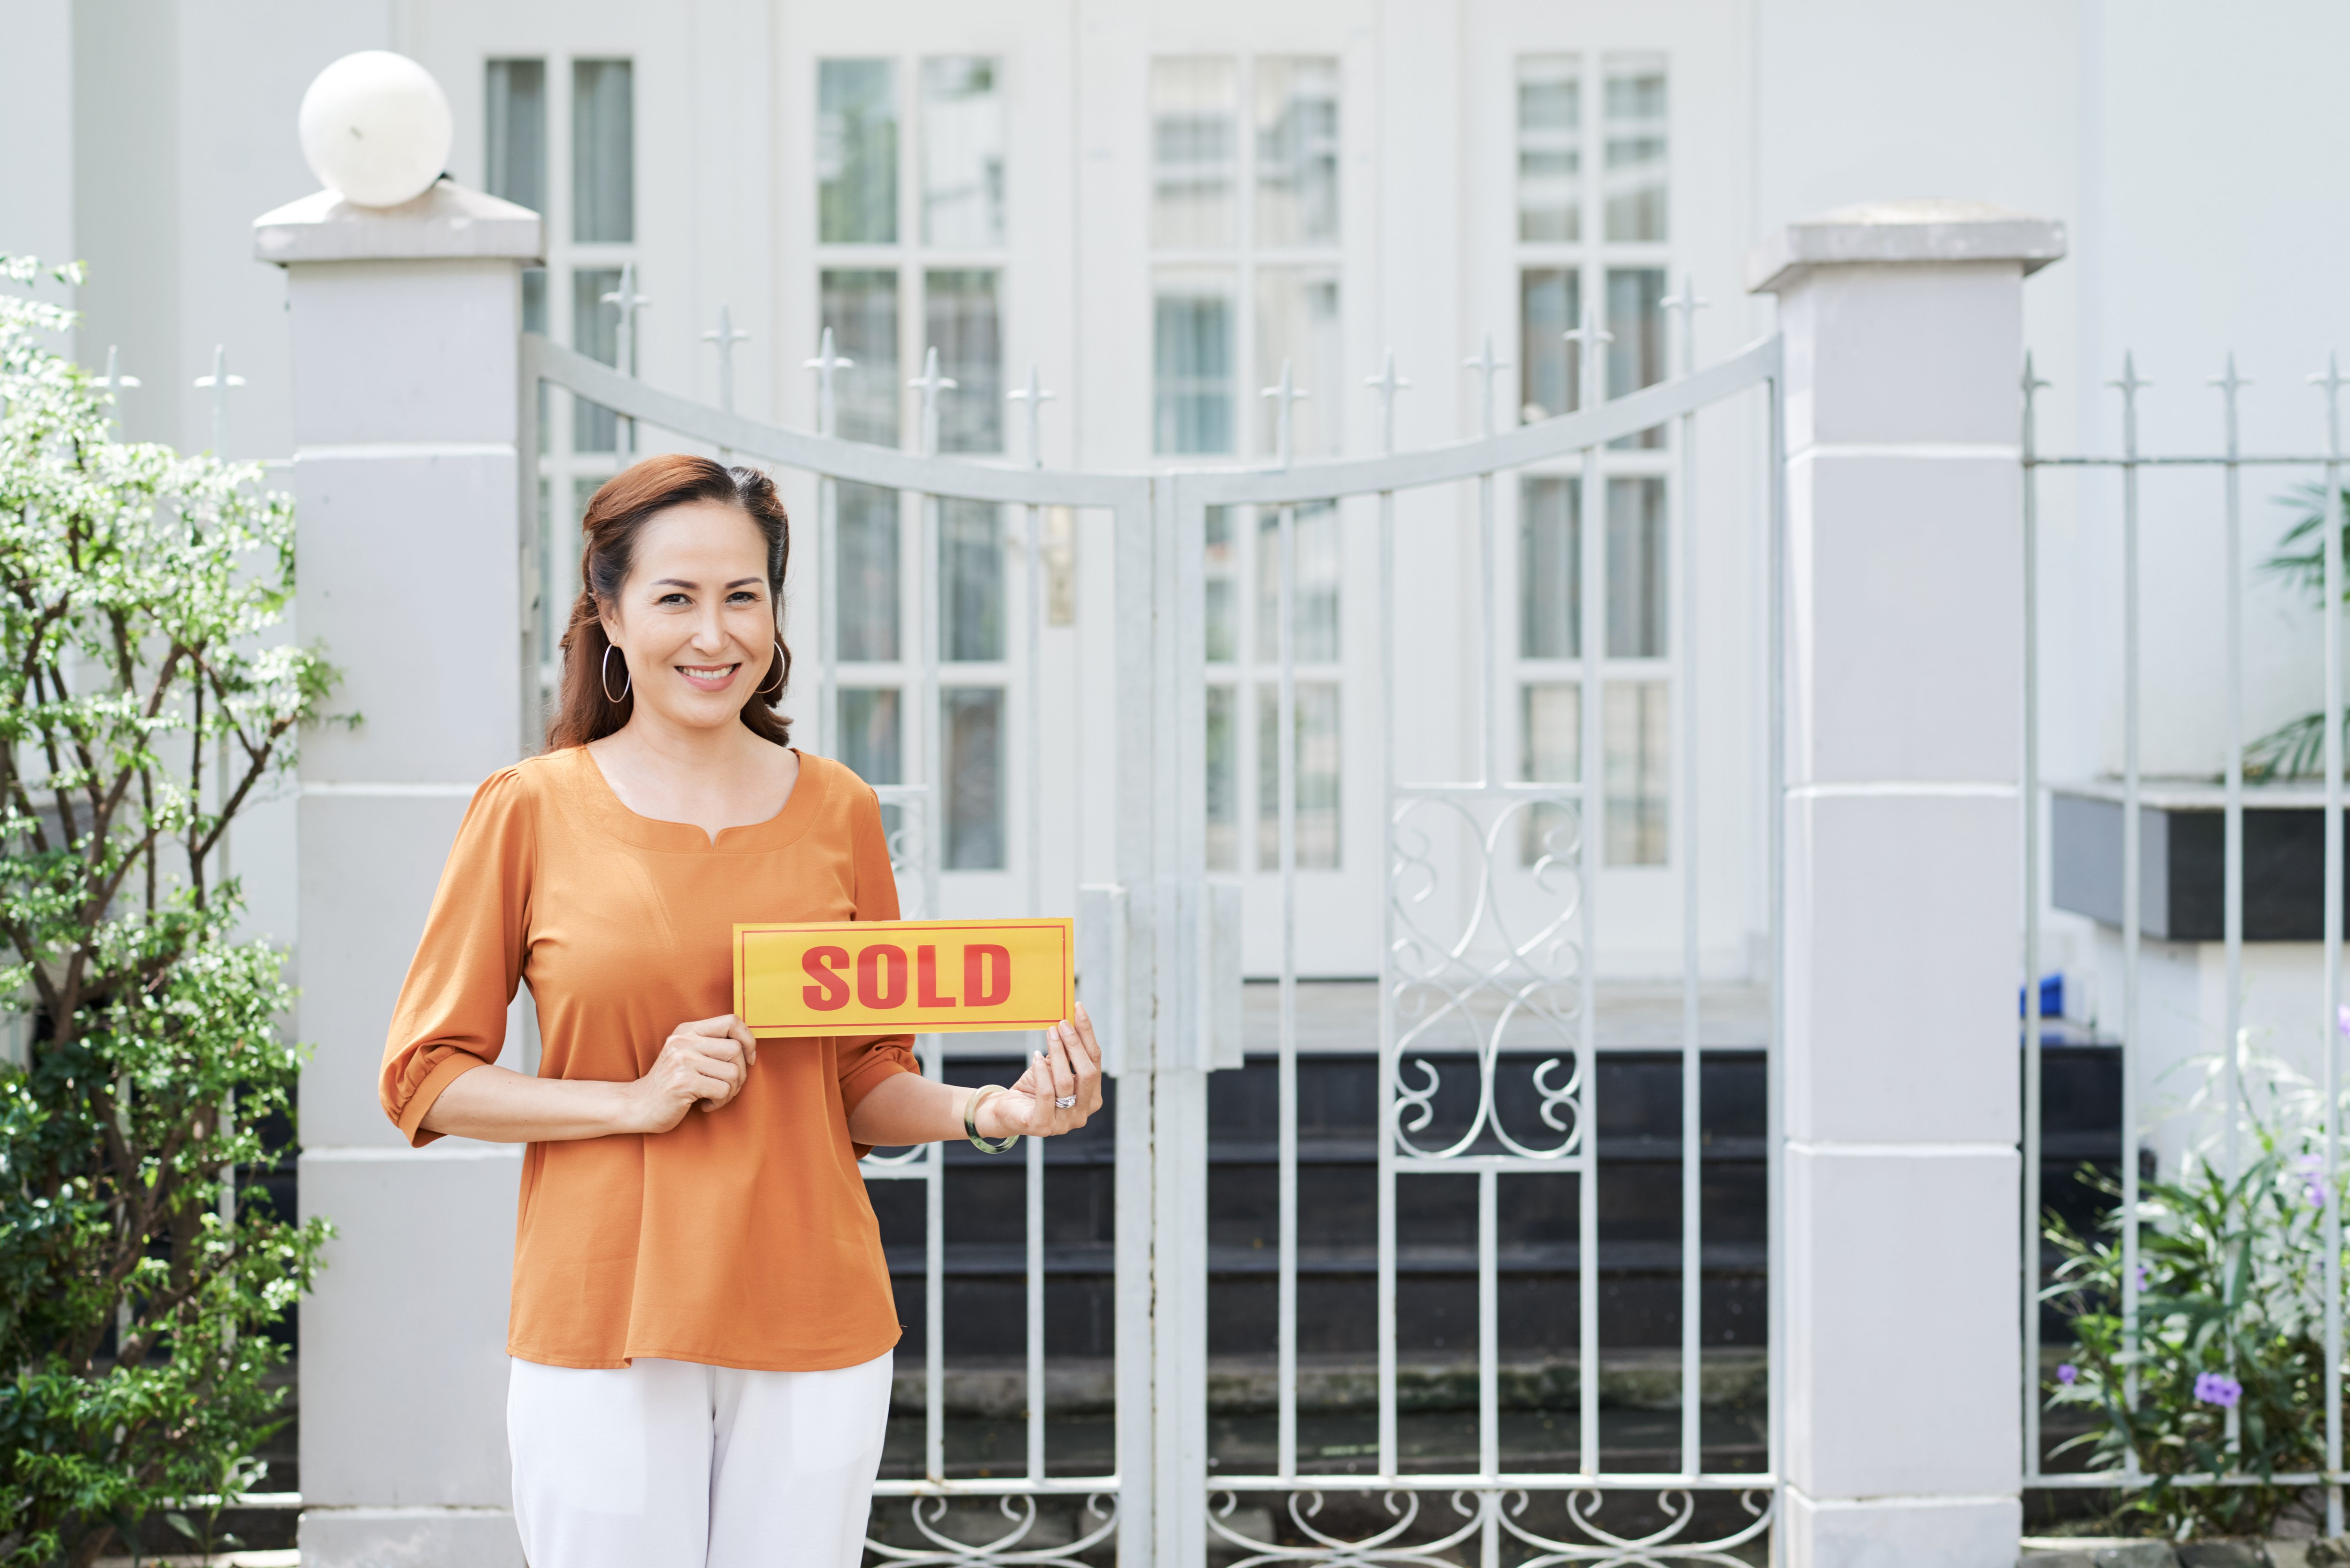 Taking advantage of January's real estate lull